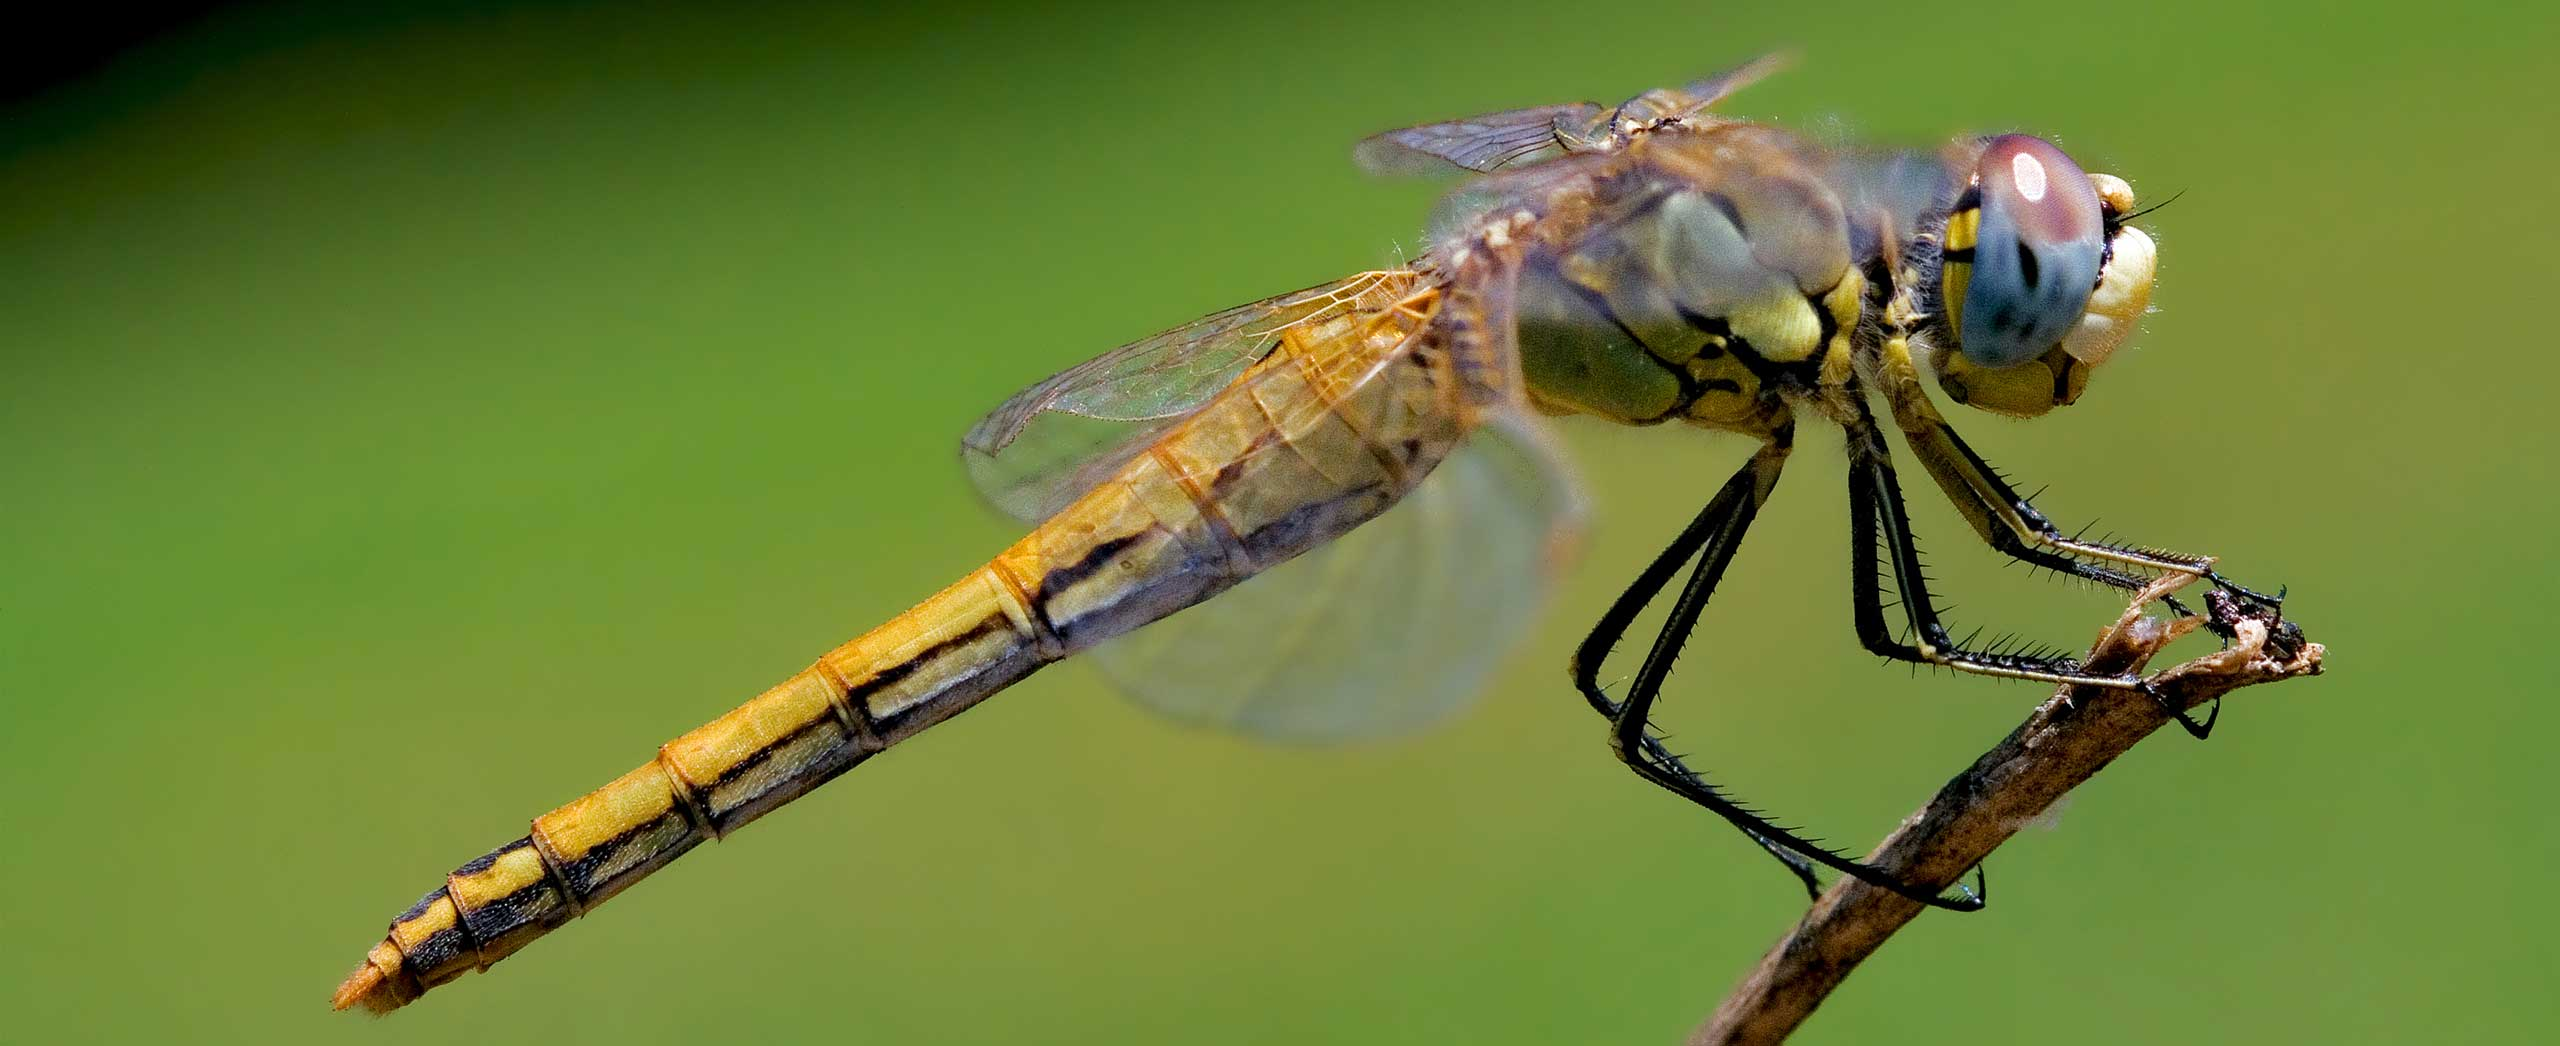 Images of Dragonfly | 2560x1046